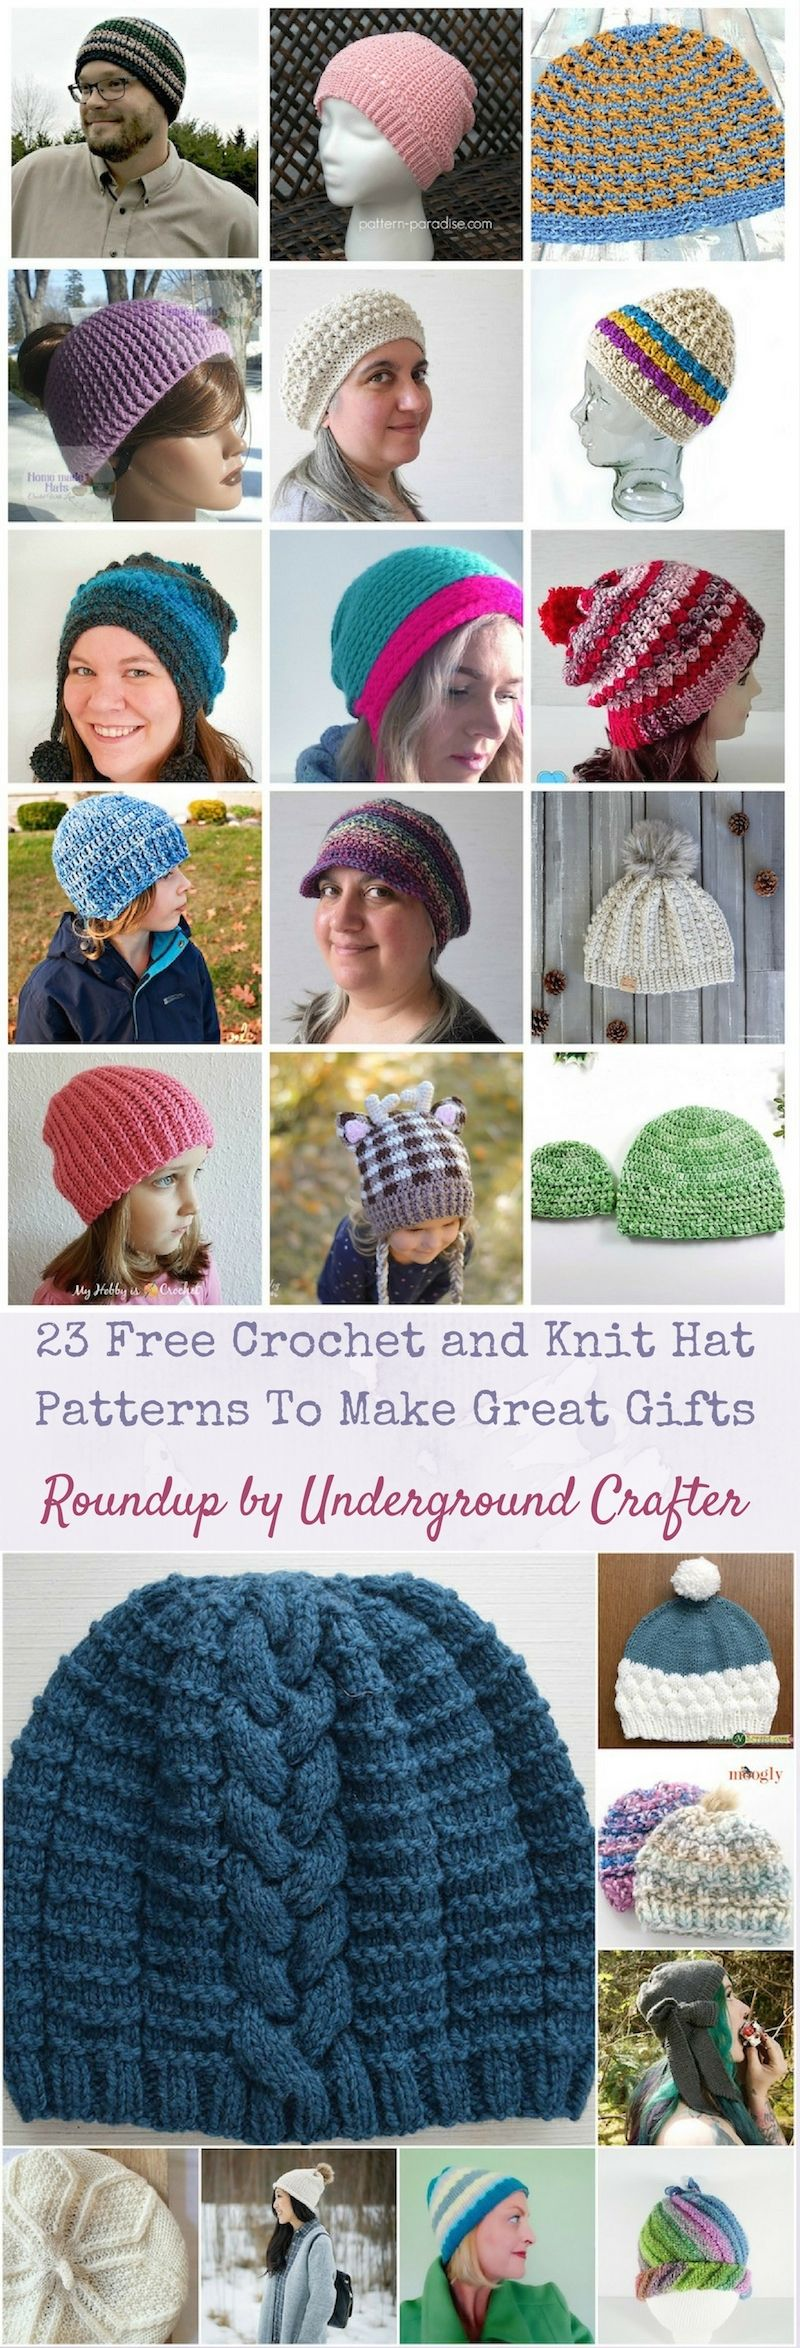 Roundup: 23 Crochet & Knit Hat Patterns To Make Great Gifts ...